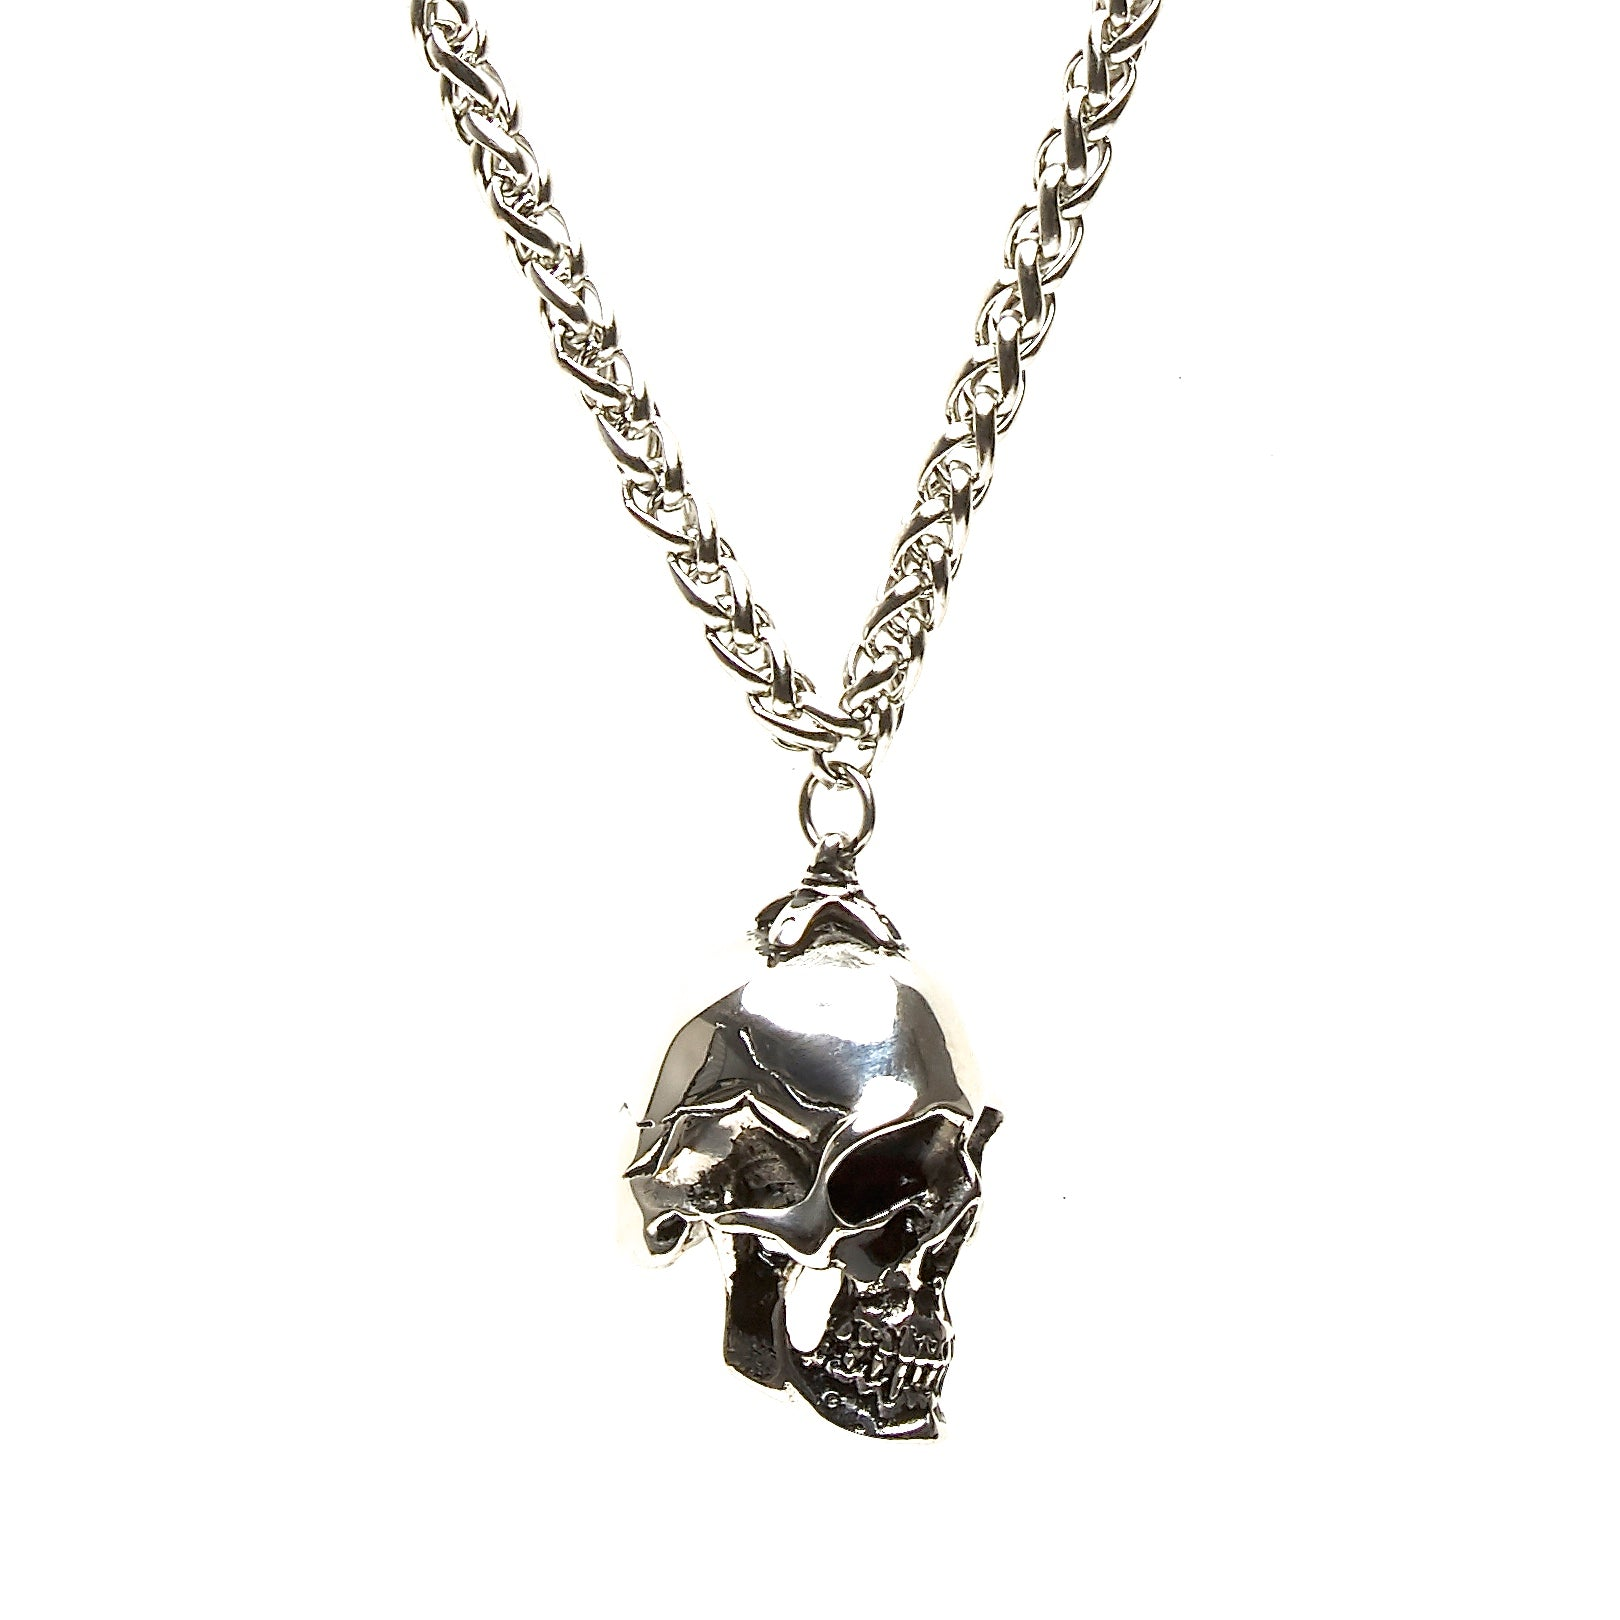 ROUND STAINLESS STEEL CHAIN NECKLACE WITH HEAVYWEIGHT SKULL PENDANT. by nyet jewelry.